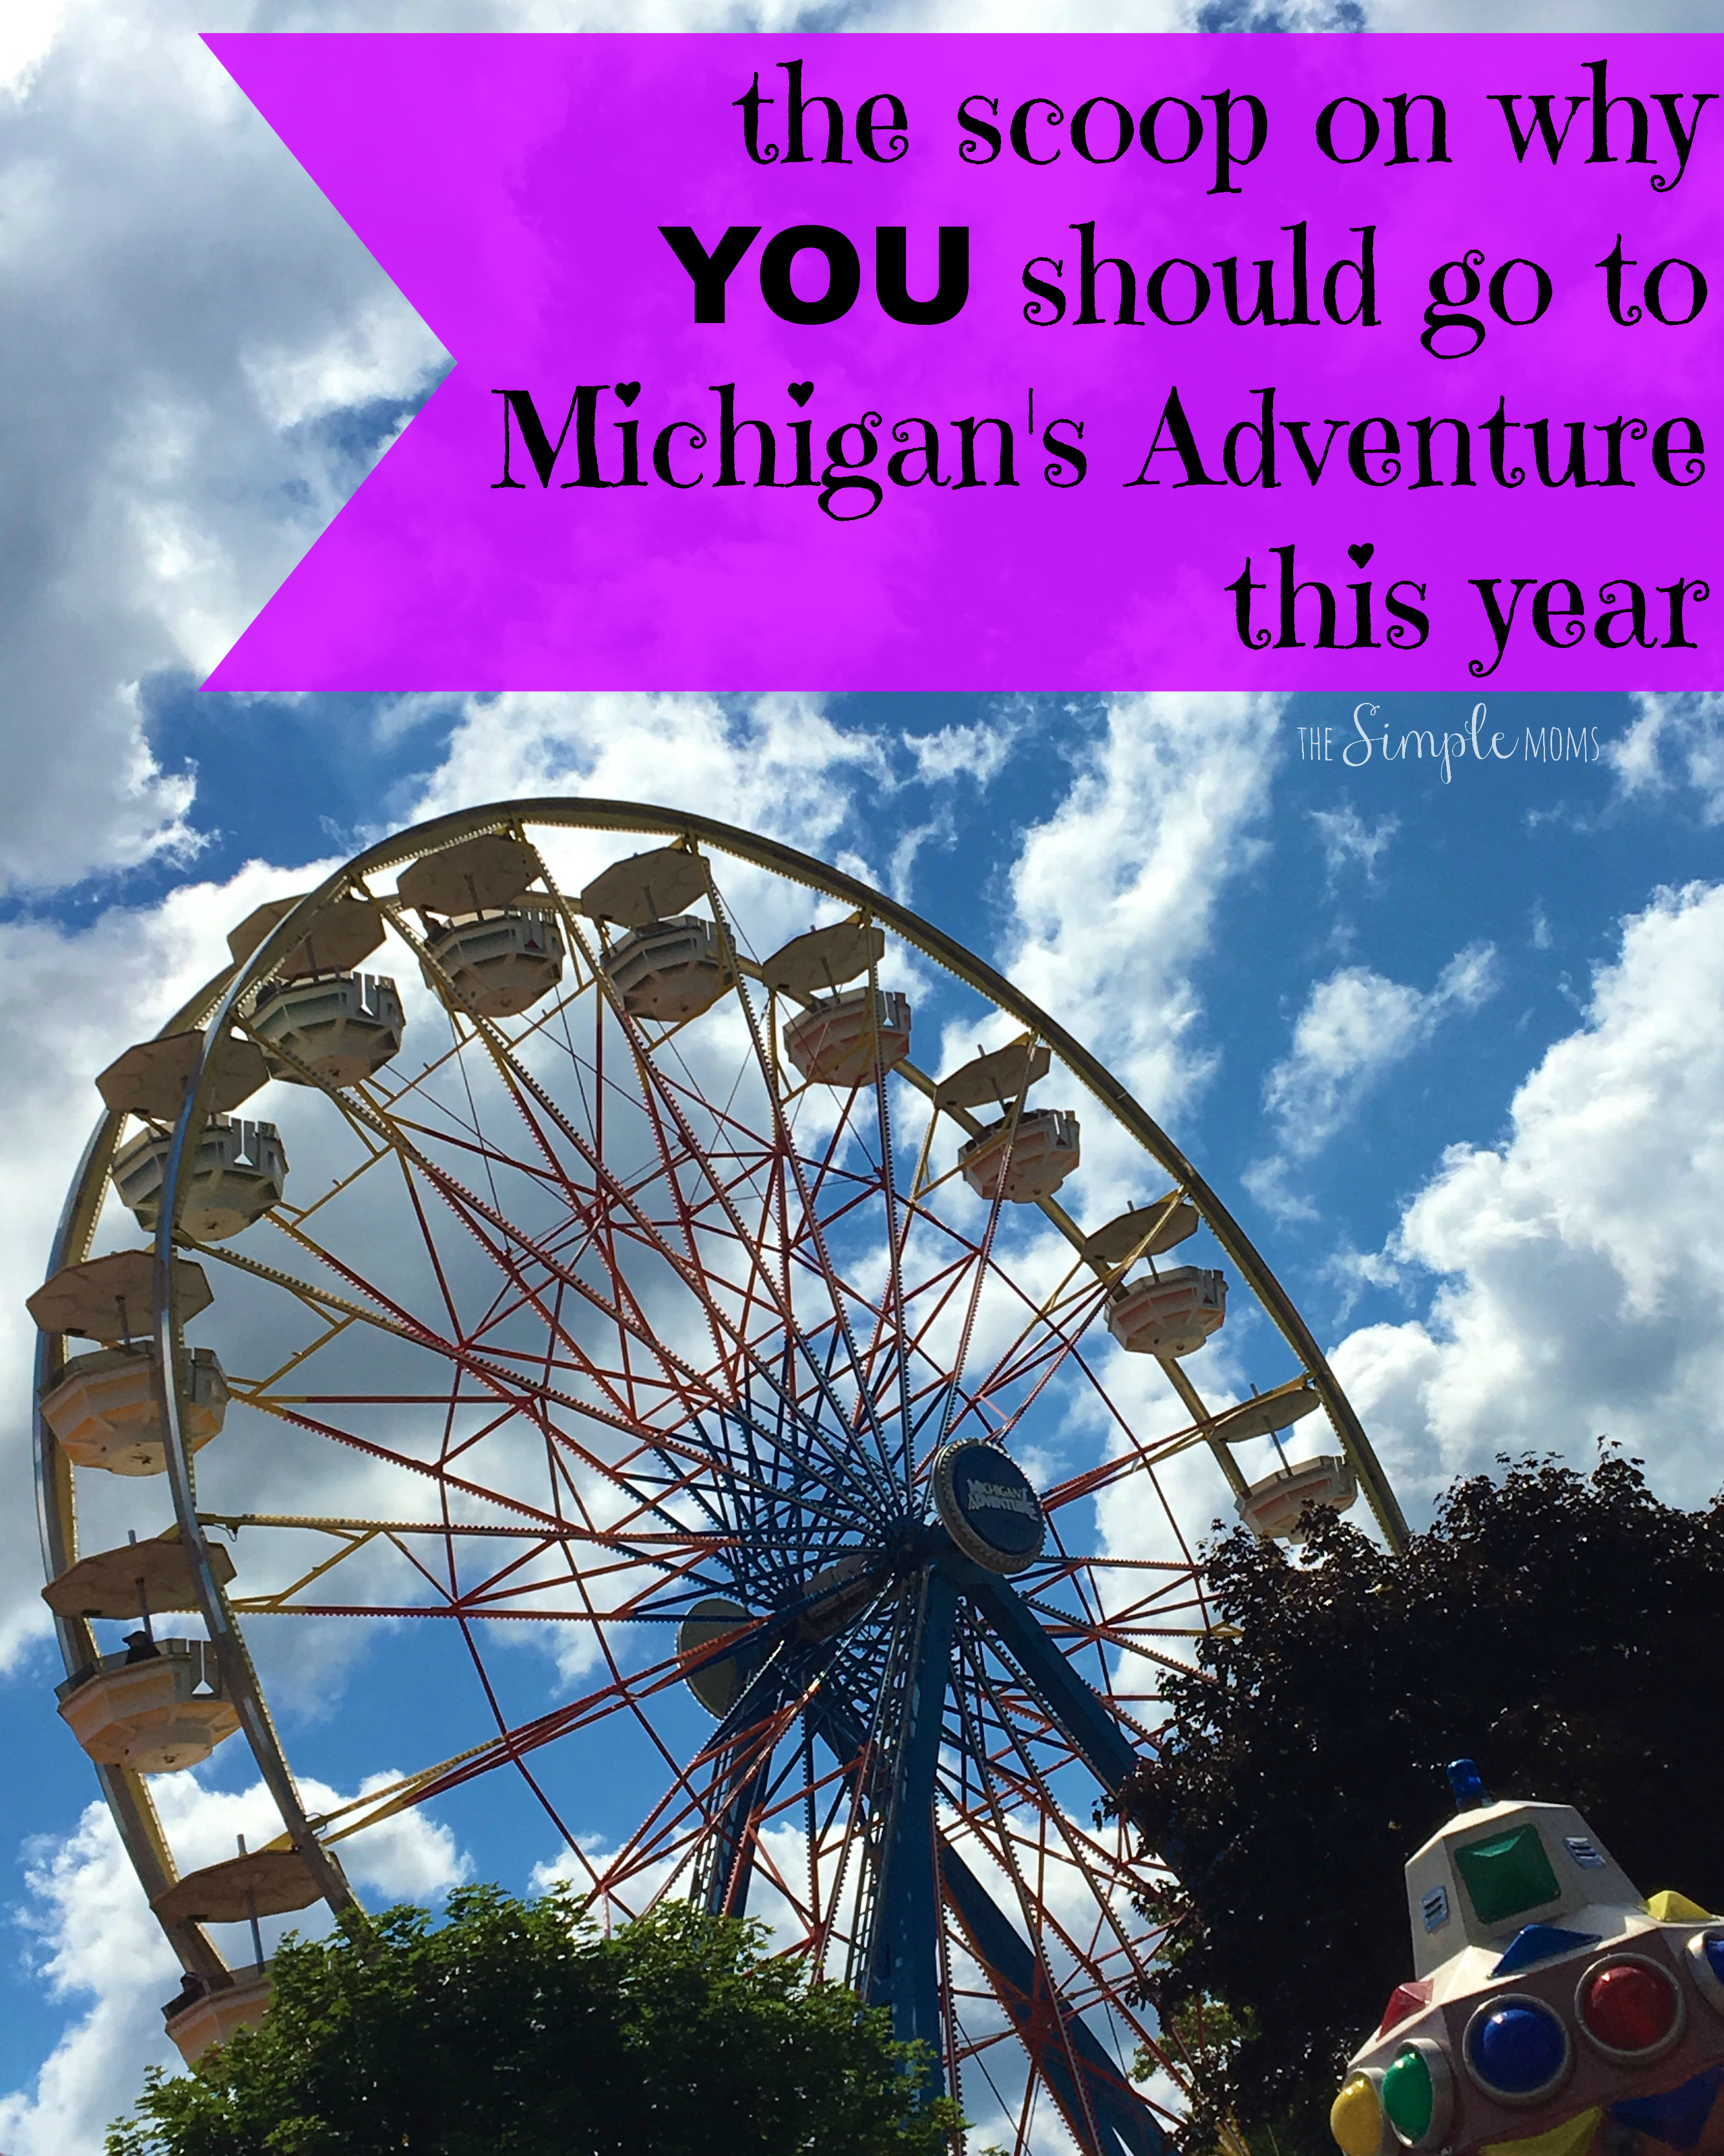 why you should go to michigan's adventure this year